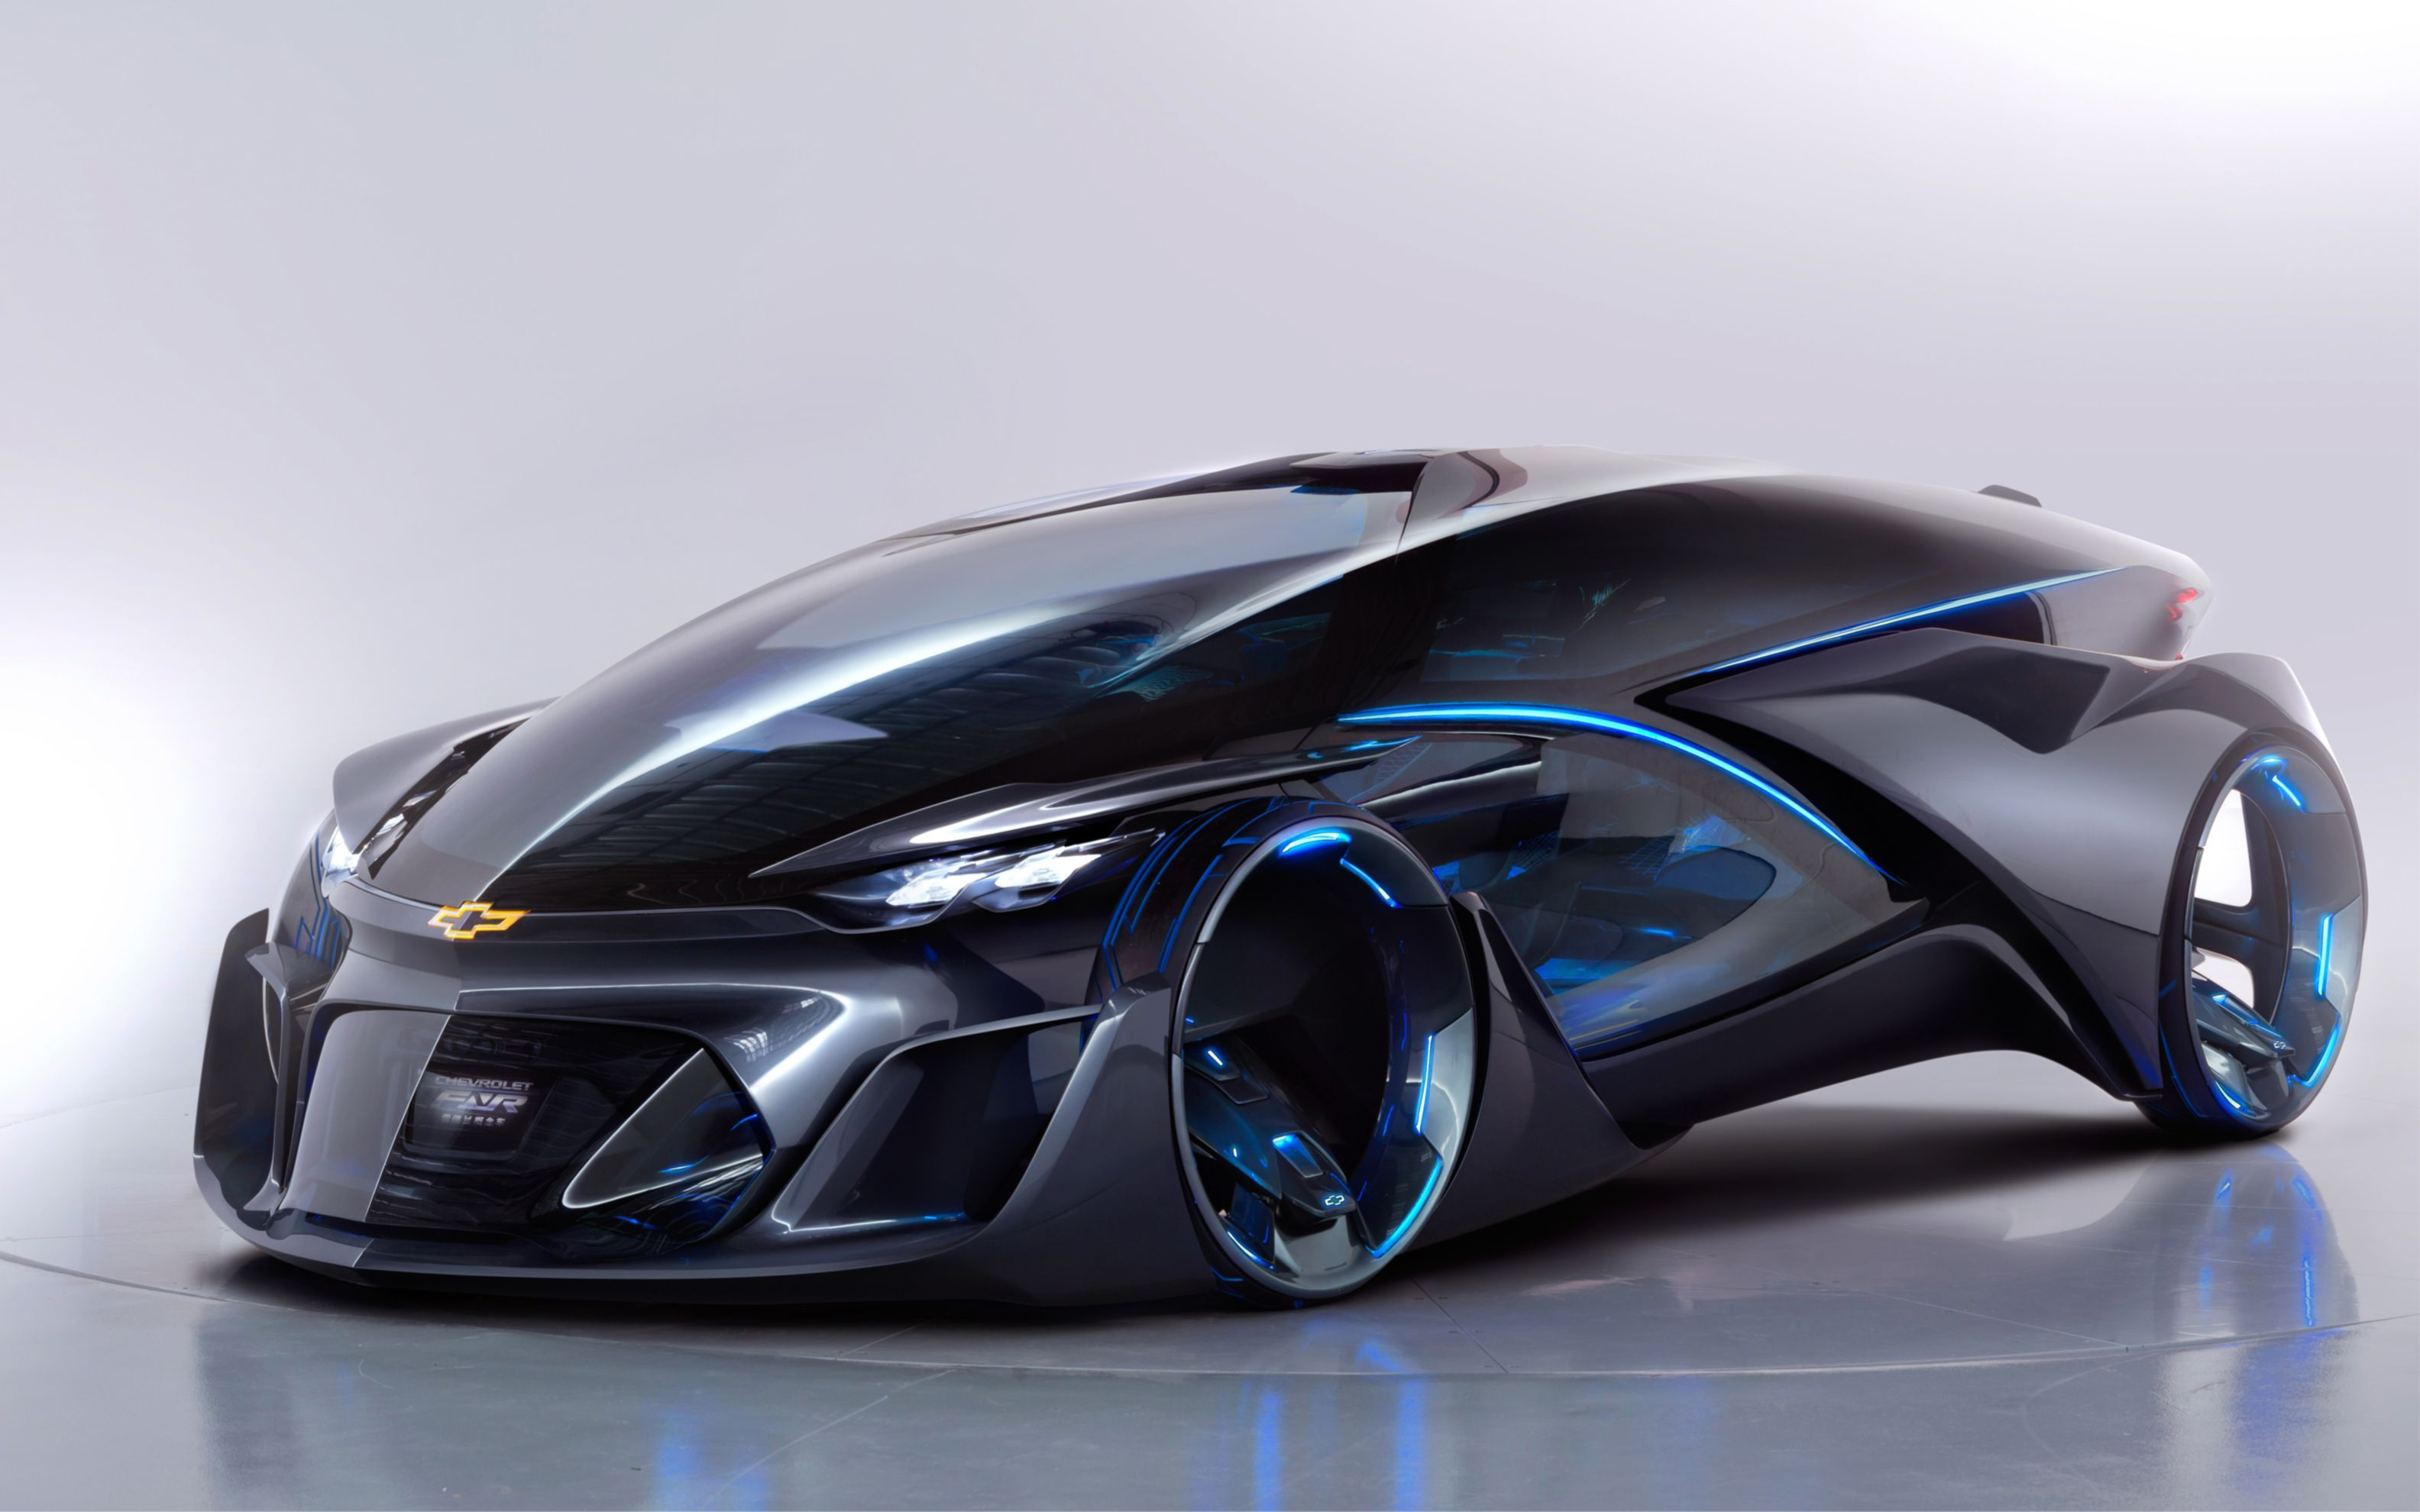 Download free HD Chevrolet Fnr Sports Concept Wide Wallpaper, image